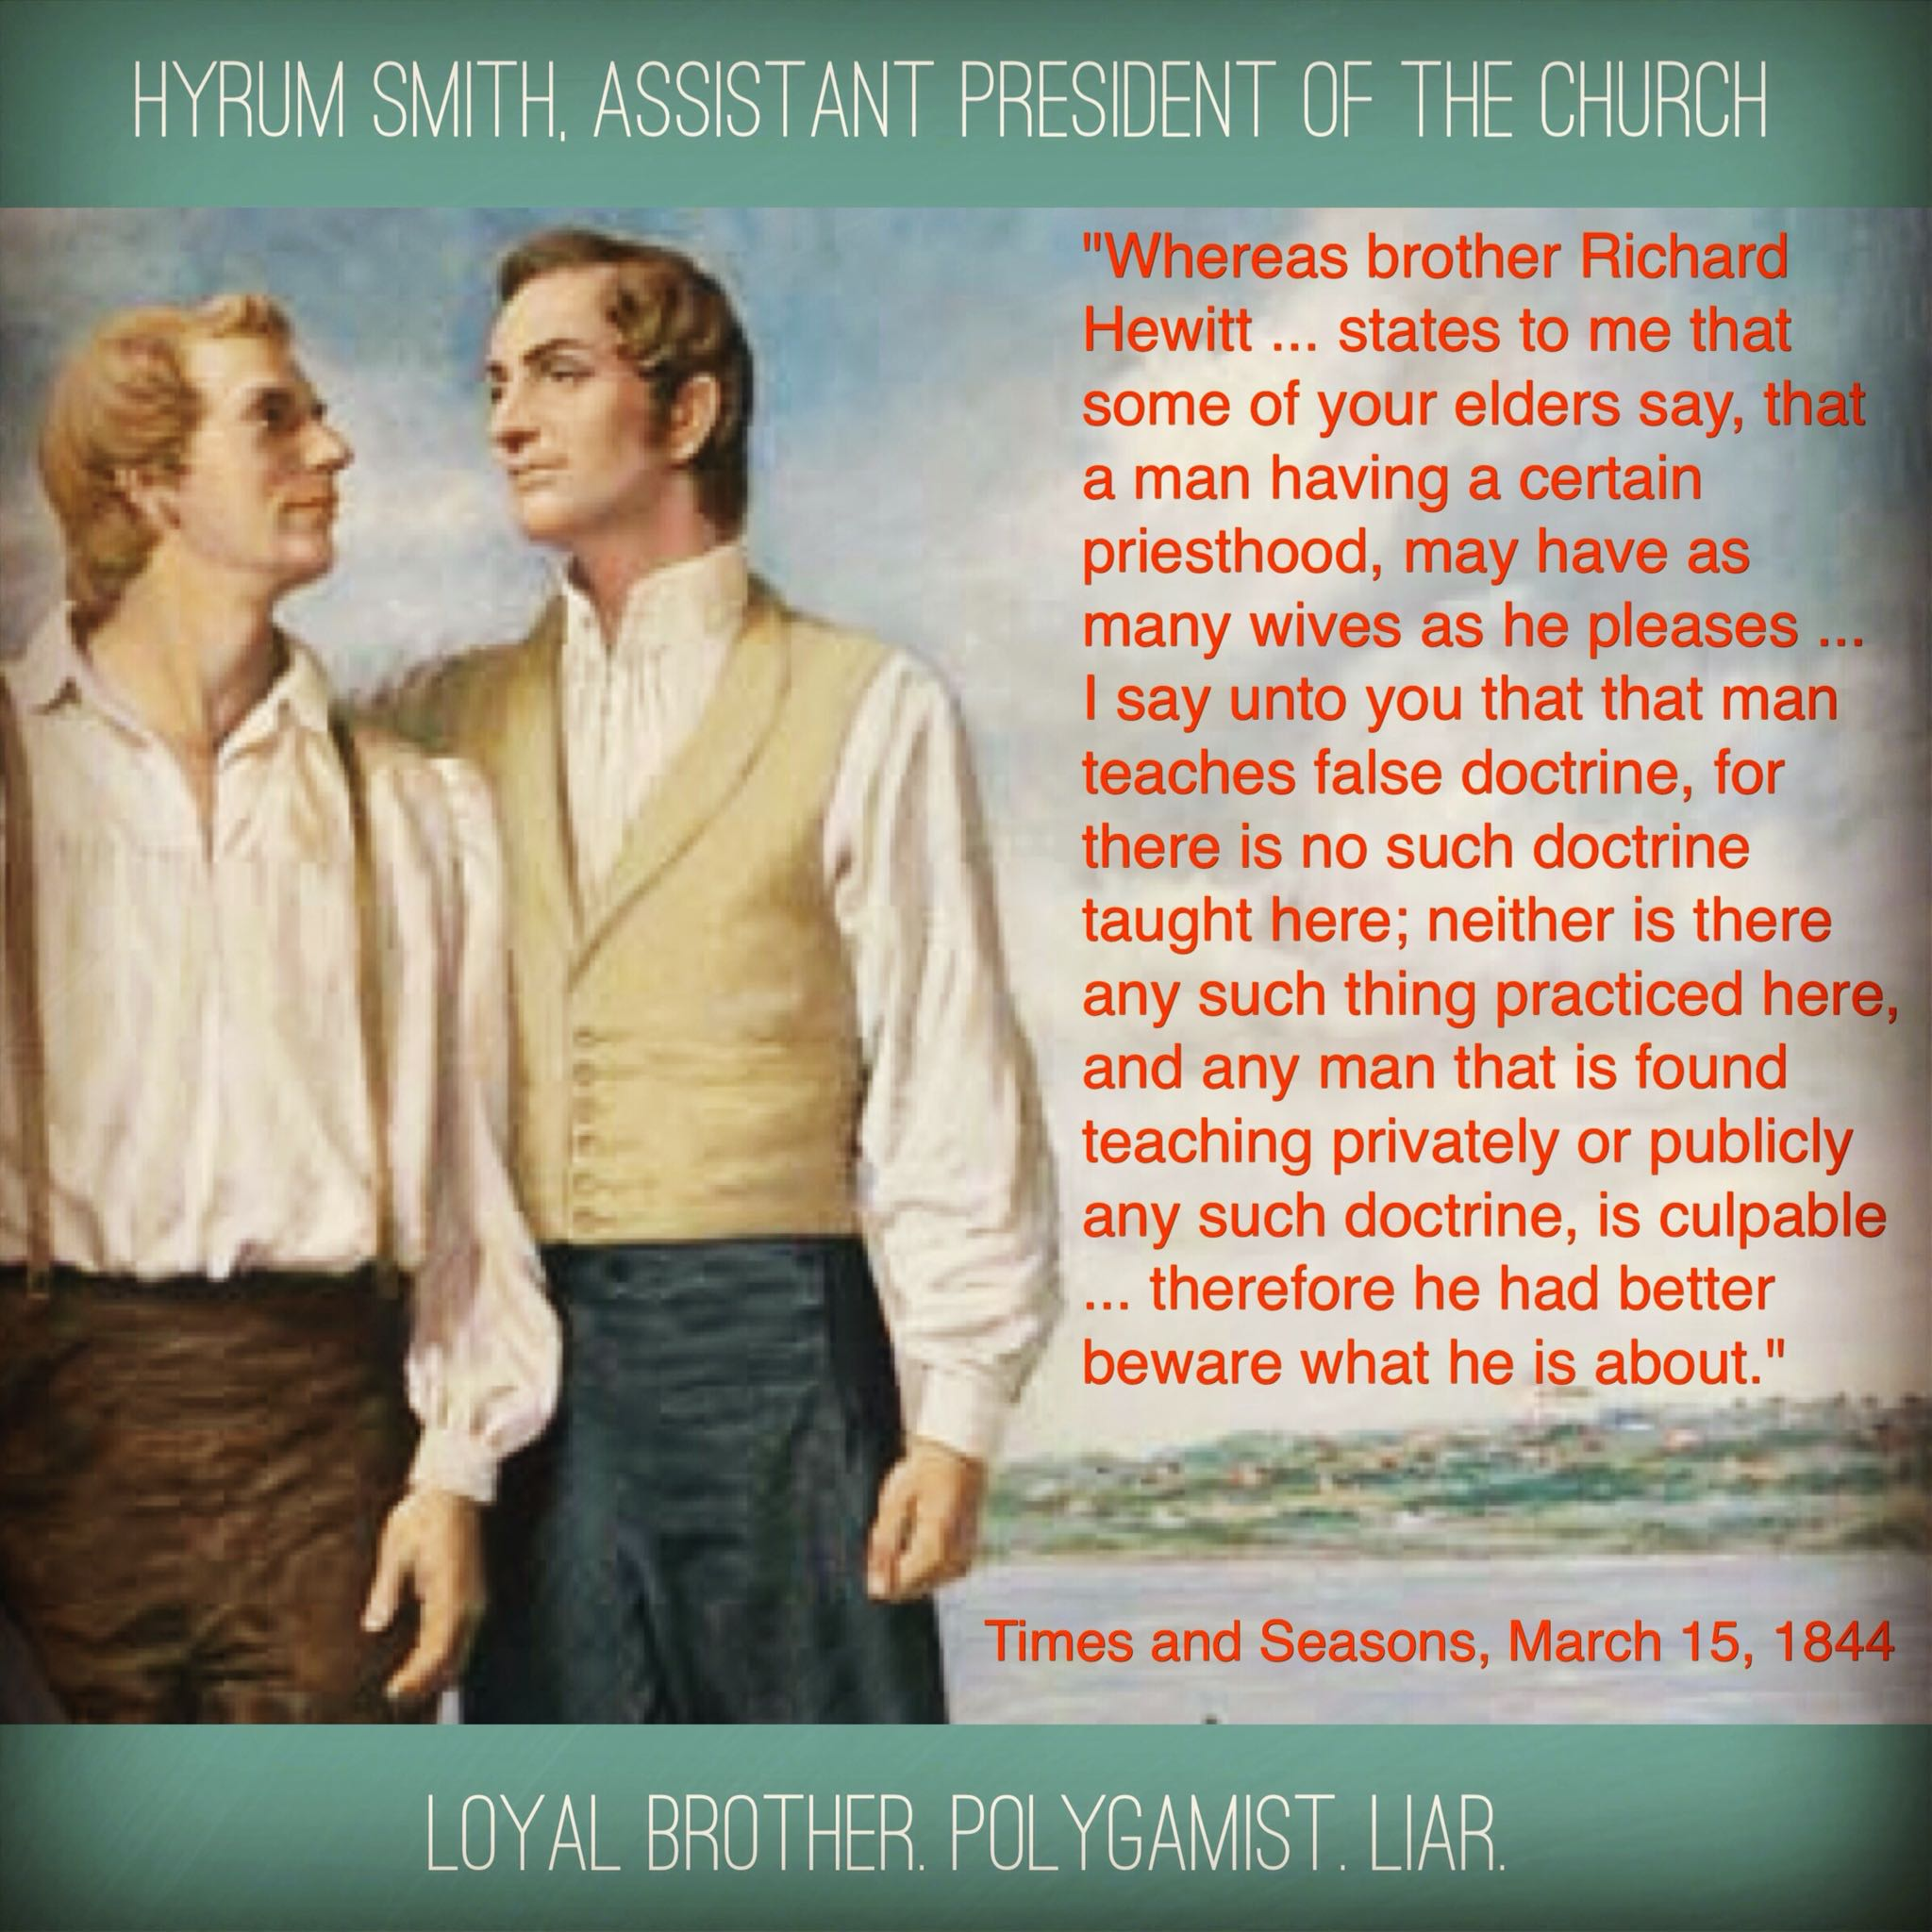 lying brother hyrum